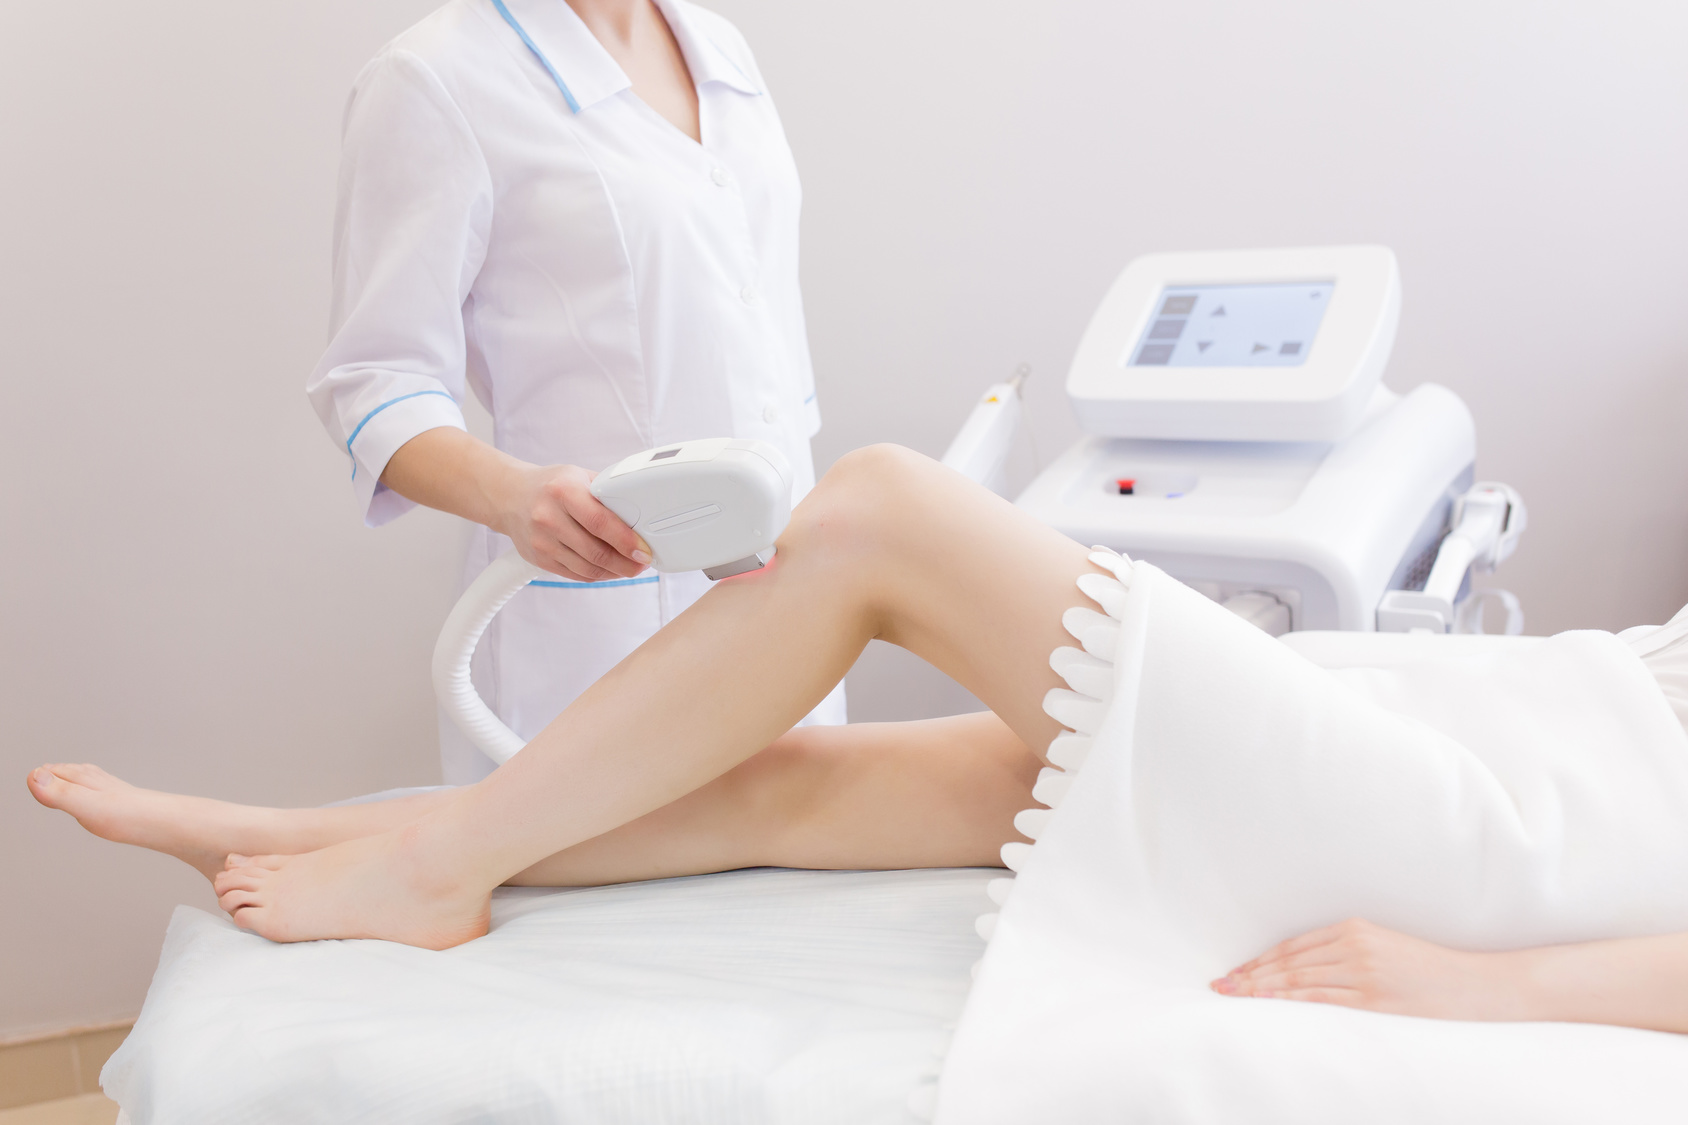 Woman on laser hair removal procedure at beauty salon